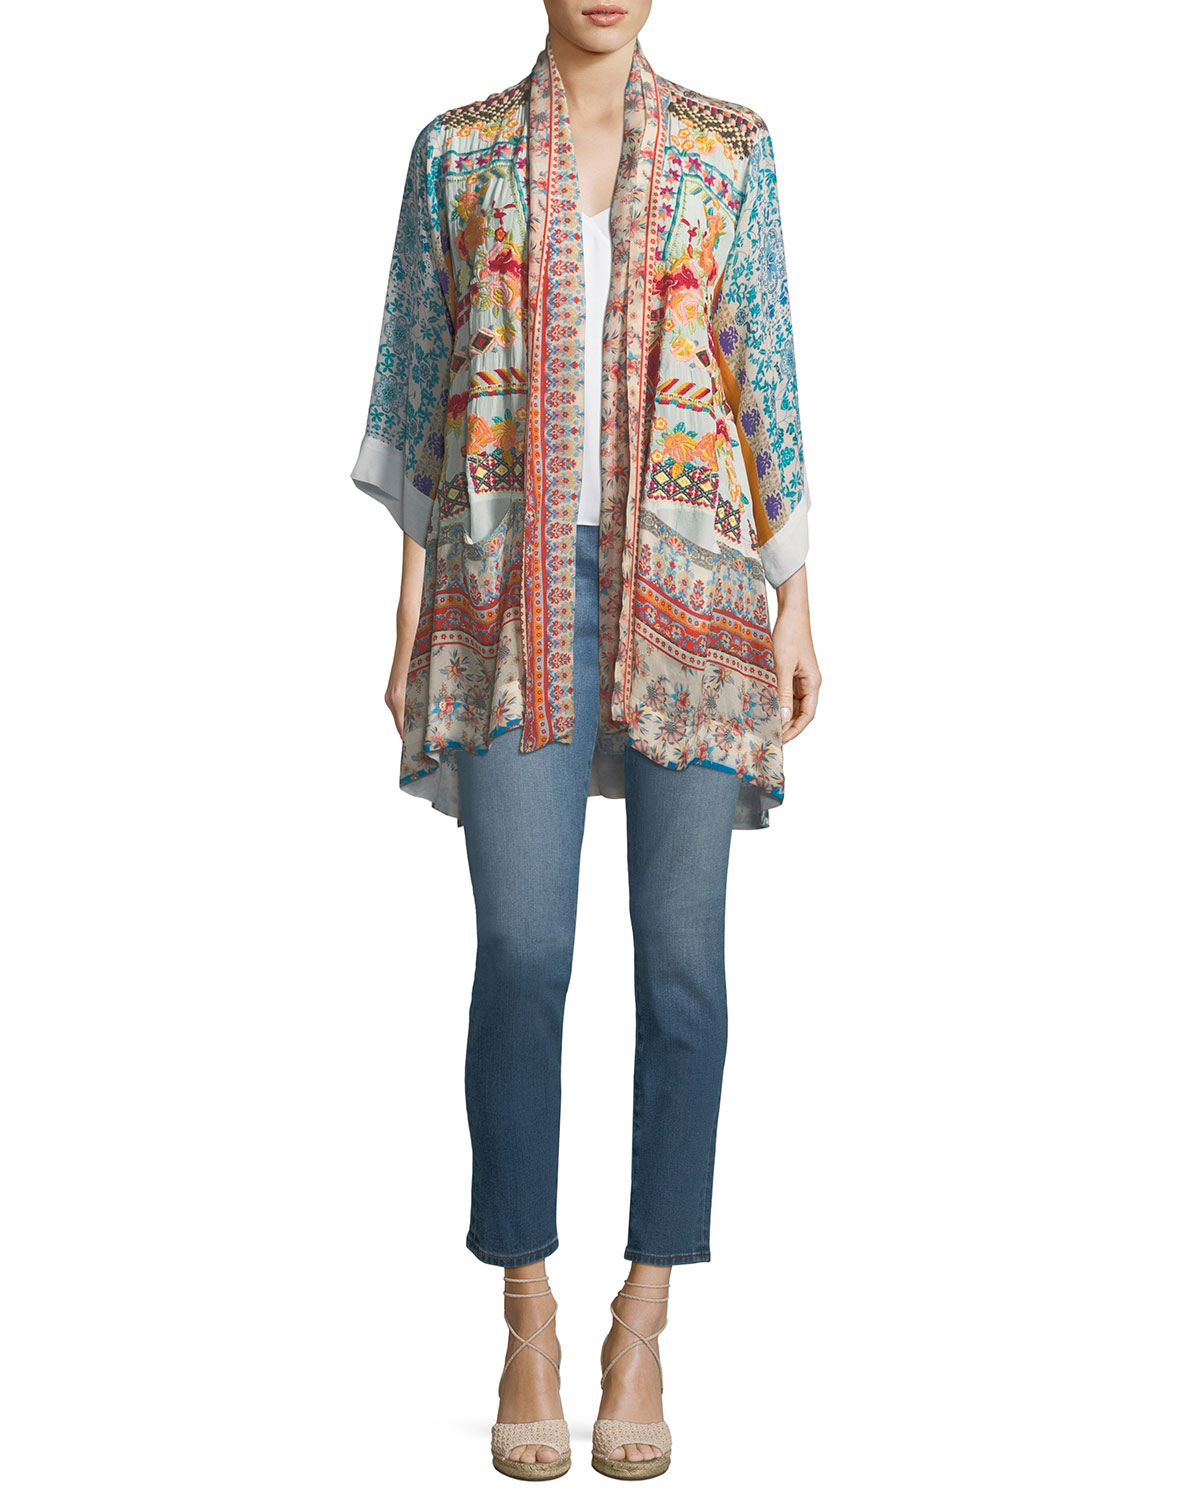 Betimo Embroidered Printed Kimono